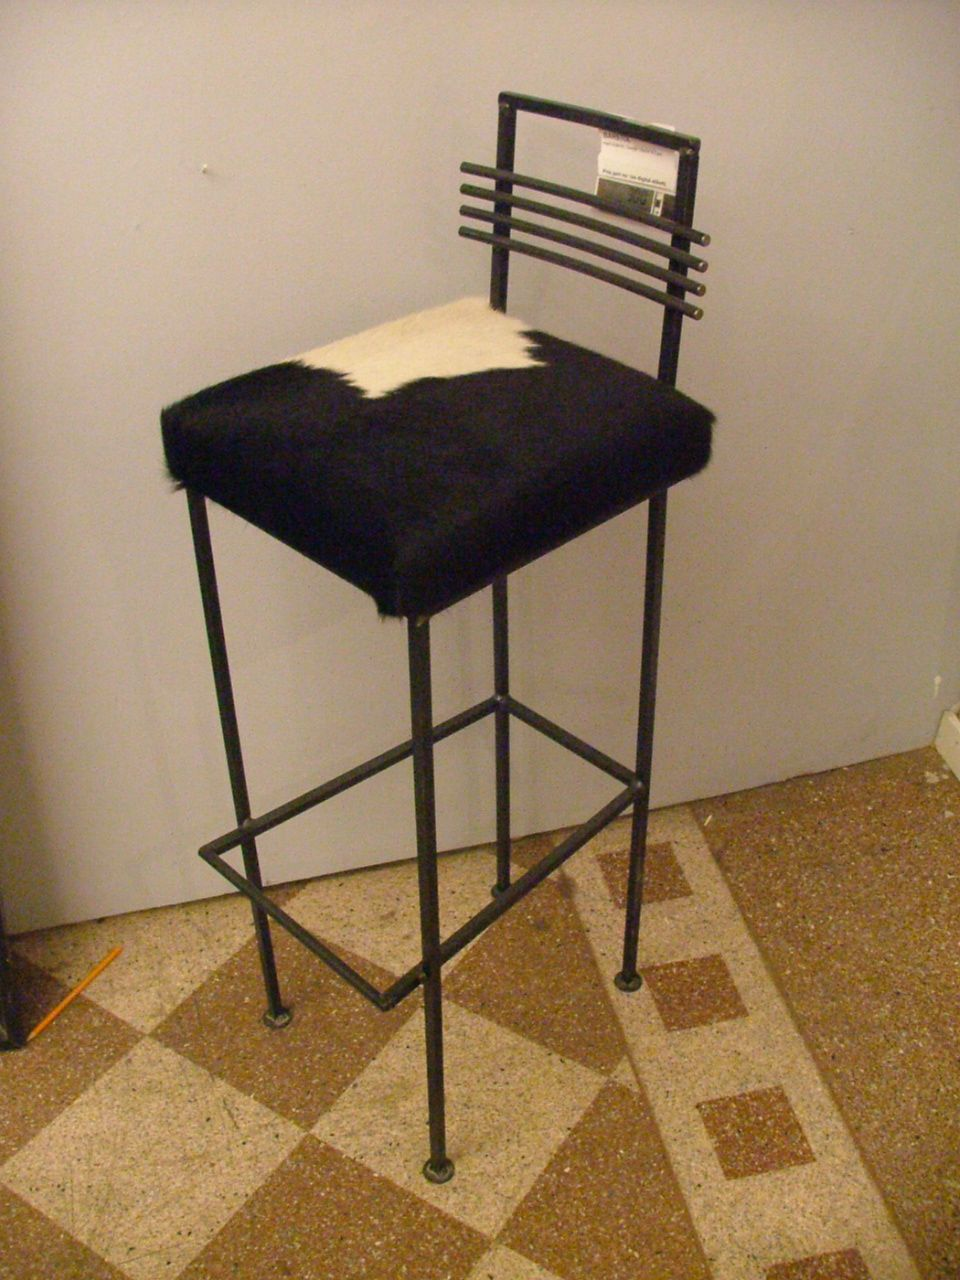 barstol with Default on Product further Revolver Bar Stool High Black Powder Coated besides Fast Forest Barstol 1 additionally I4m Flashcards Items In The House In Swedish moreover 9177 Viggo Barstol Polstret.